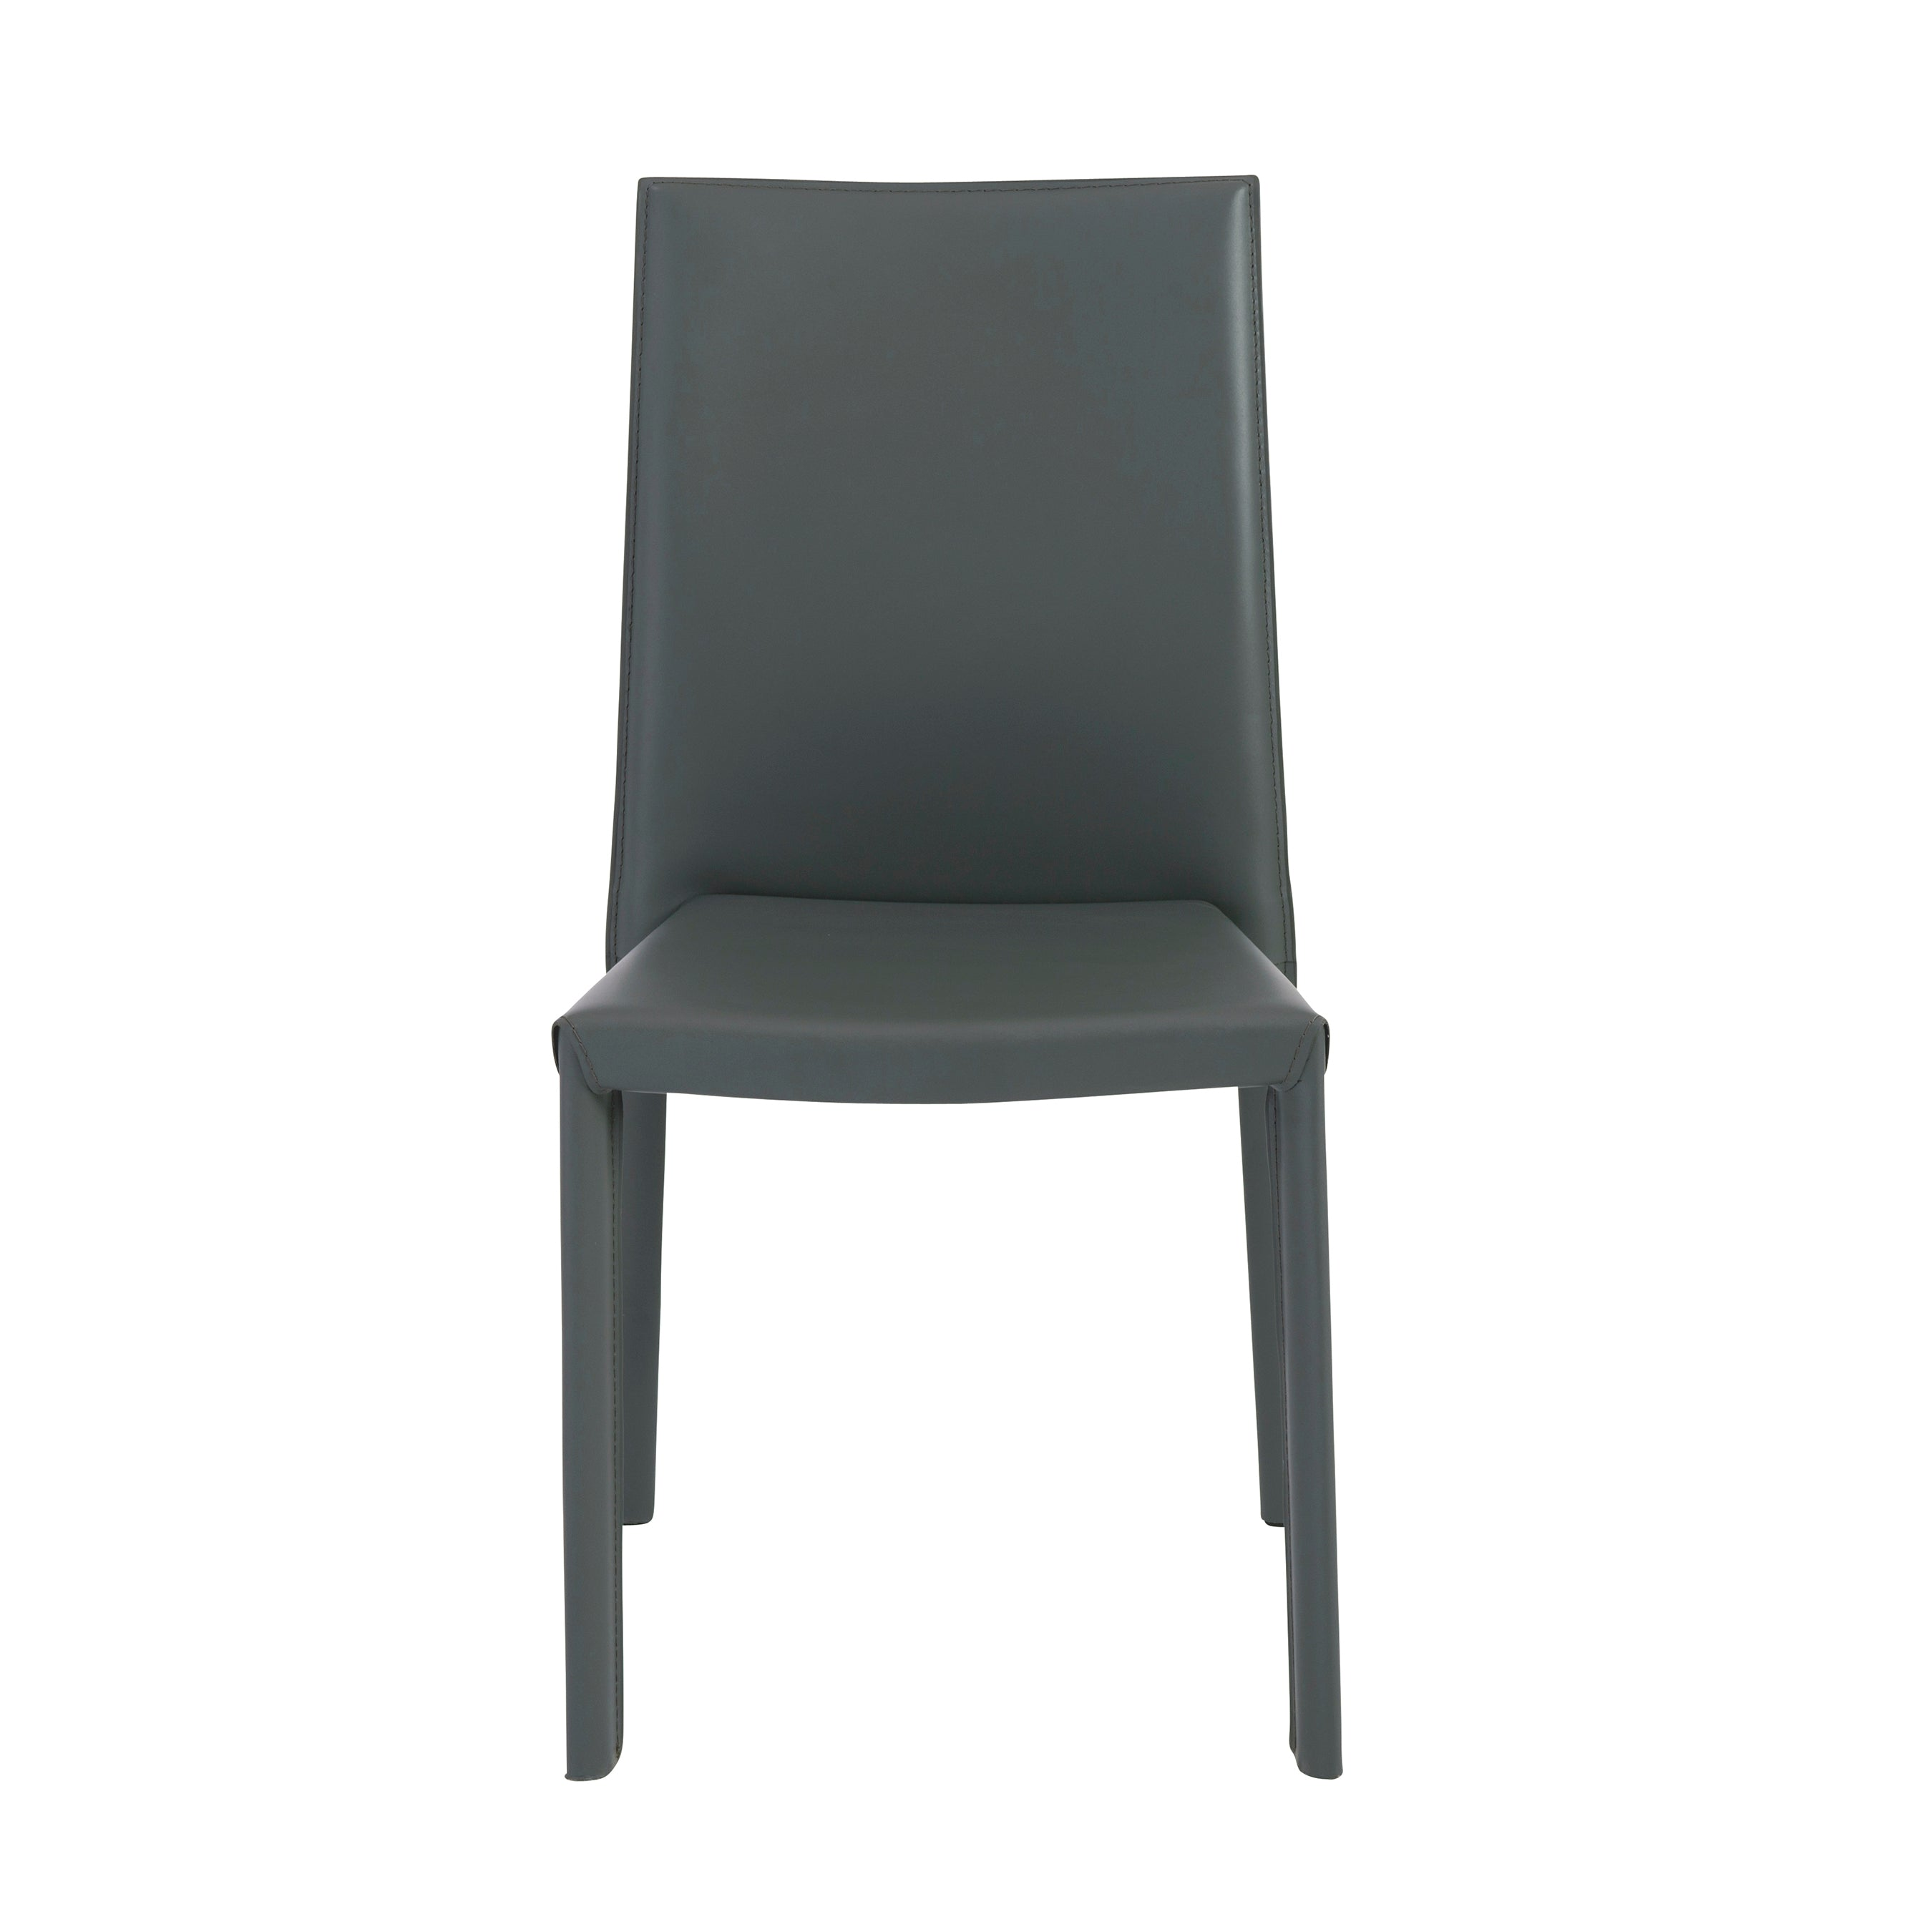 Gray Regenerated Leather Guest or Conference Chair (Set of 4)